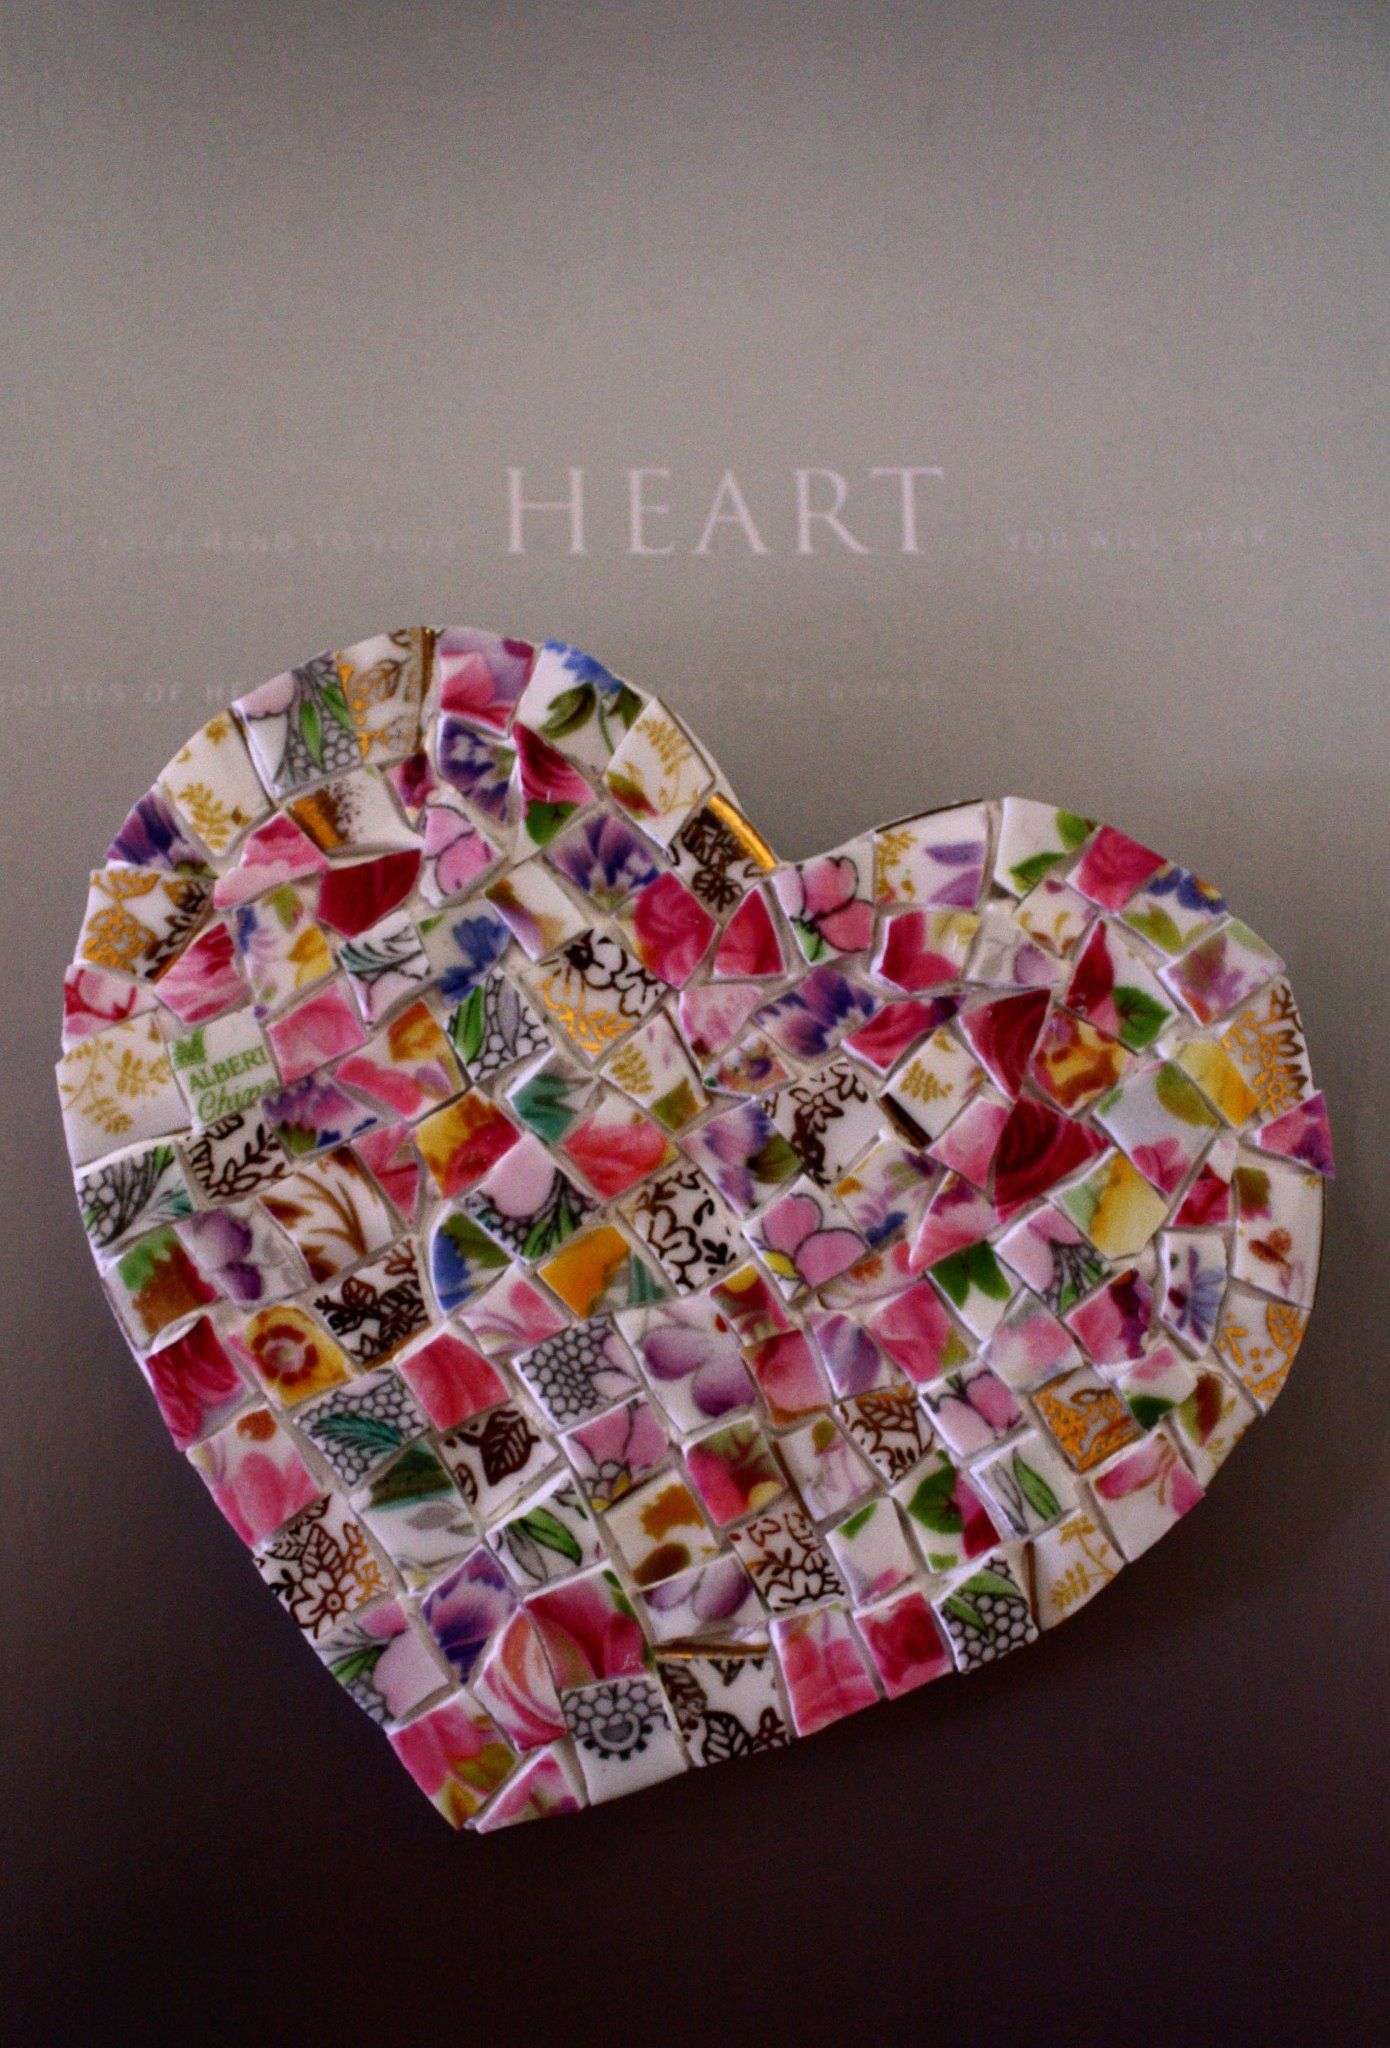 Sold custom made butterfly mosaic table top for mary ann in texas - Mosaic Heart